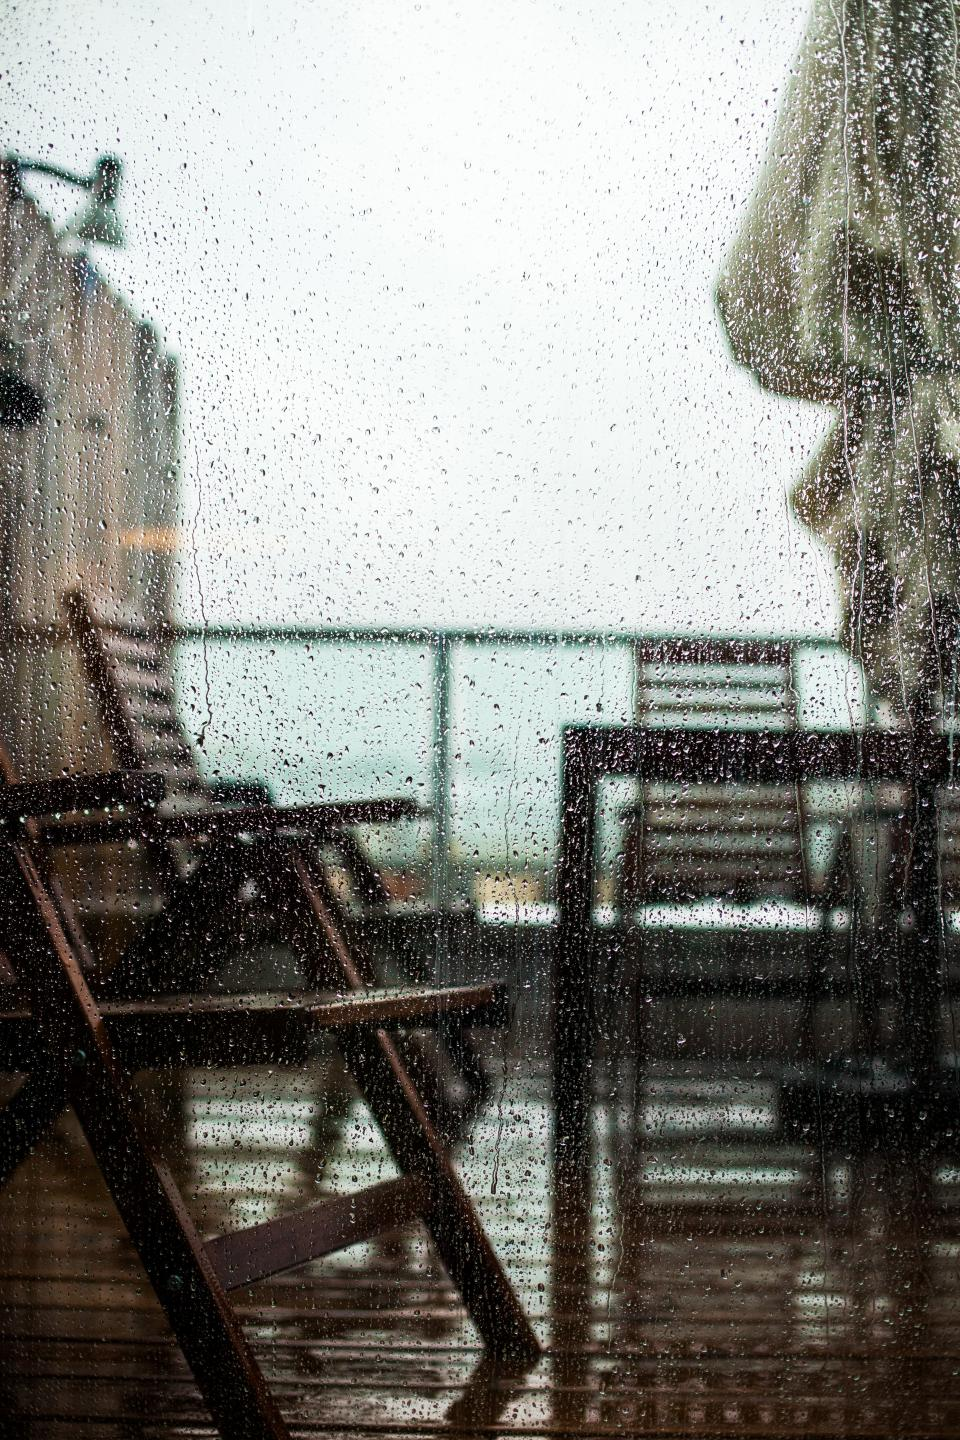 glass, window, rain, veranda, chair, chill, relax